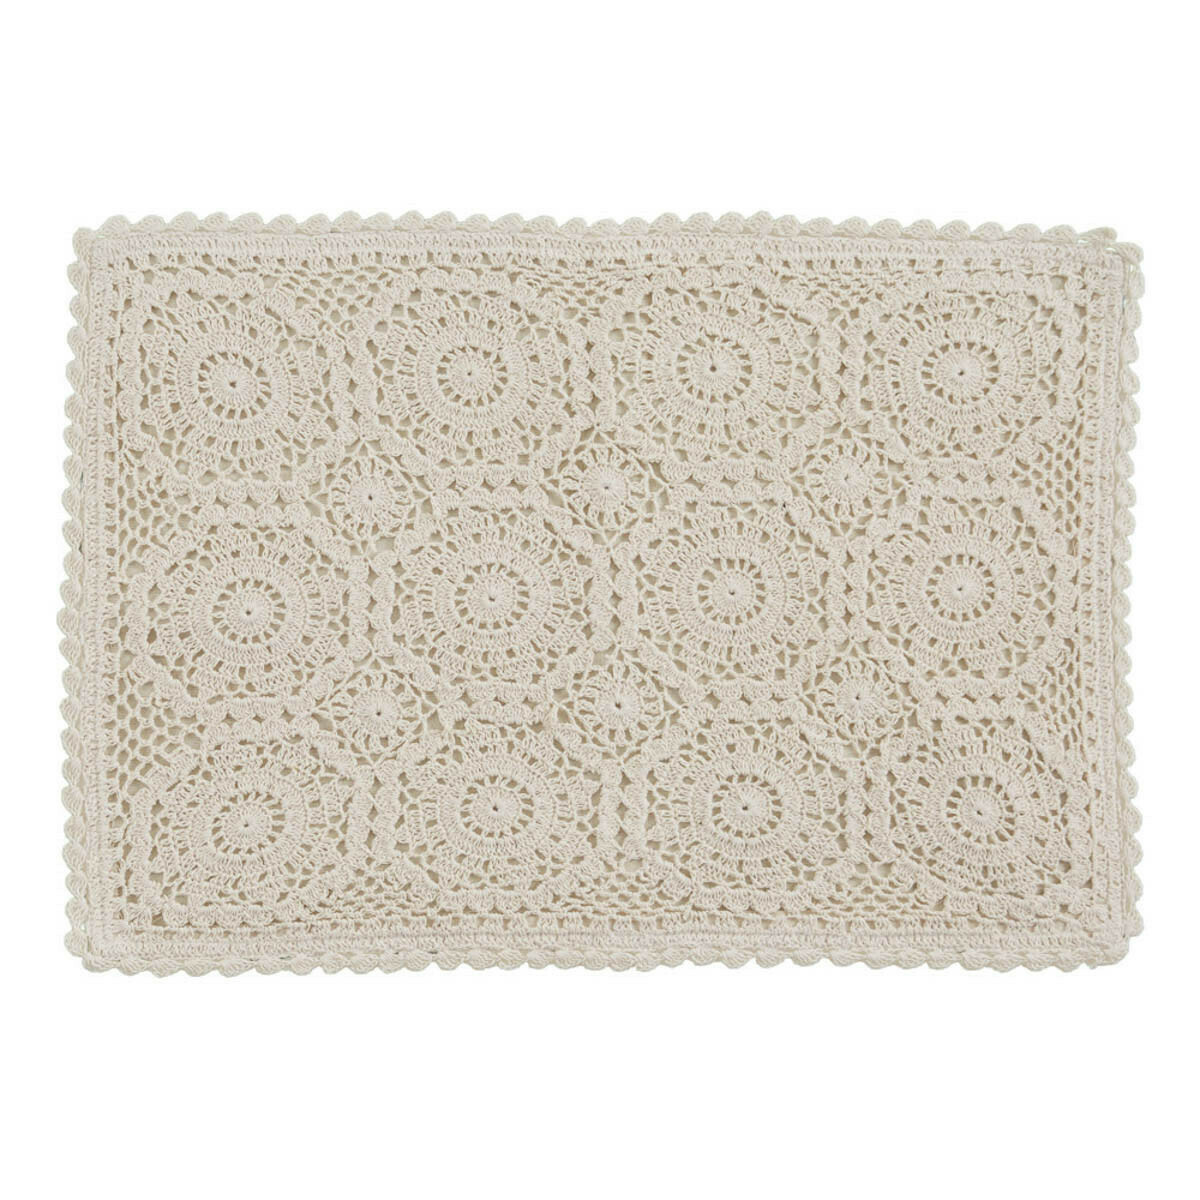 Lace Oatmeal Placemat